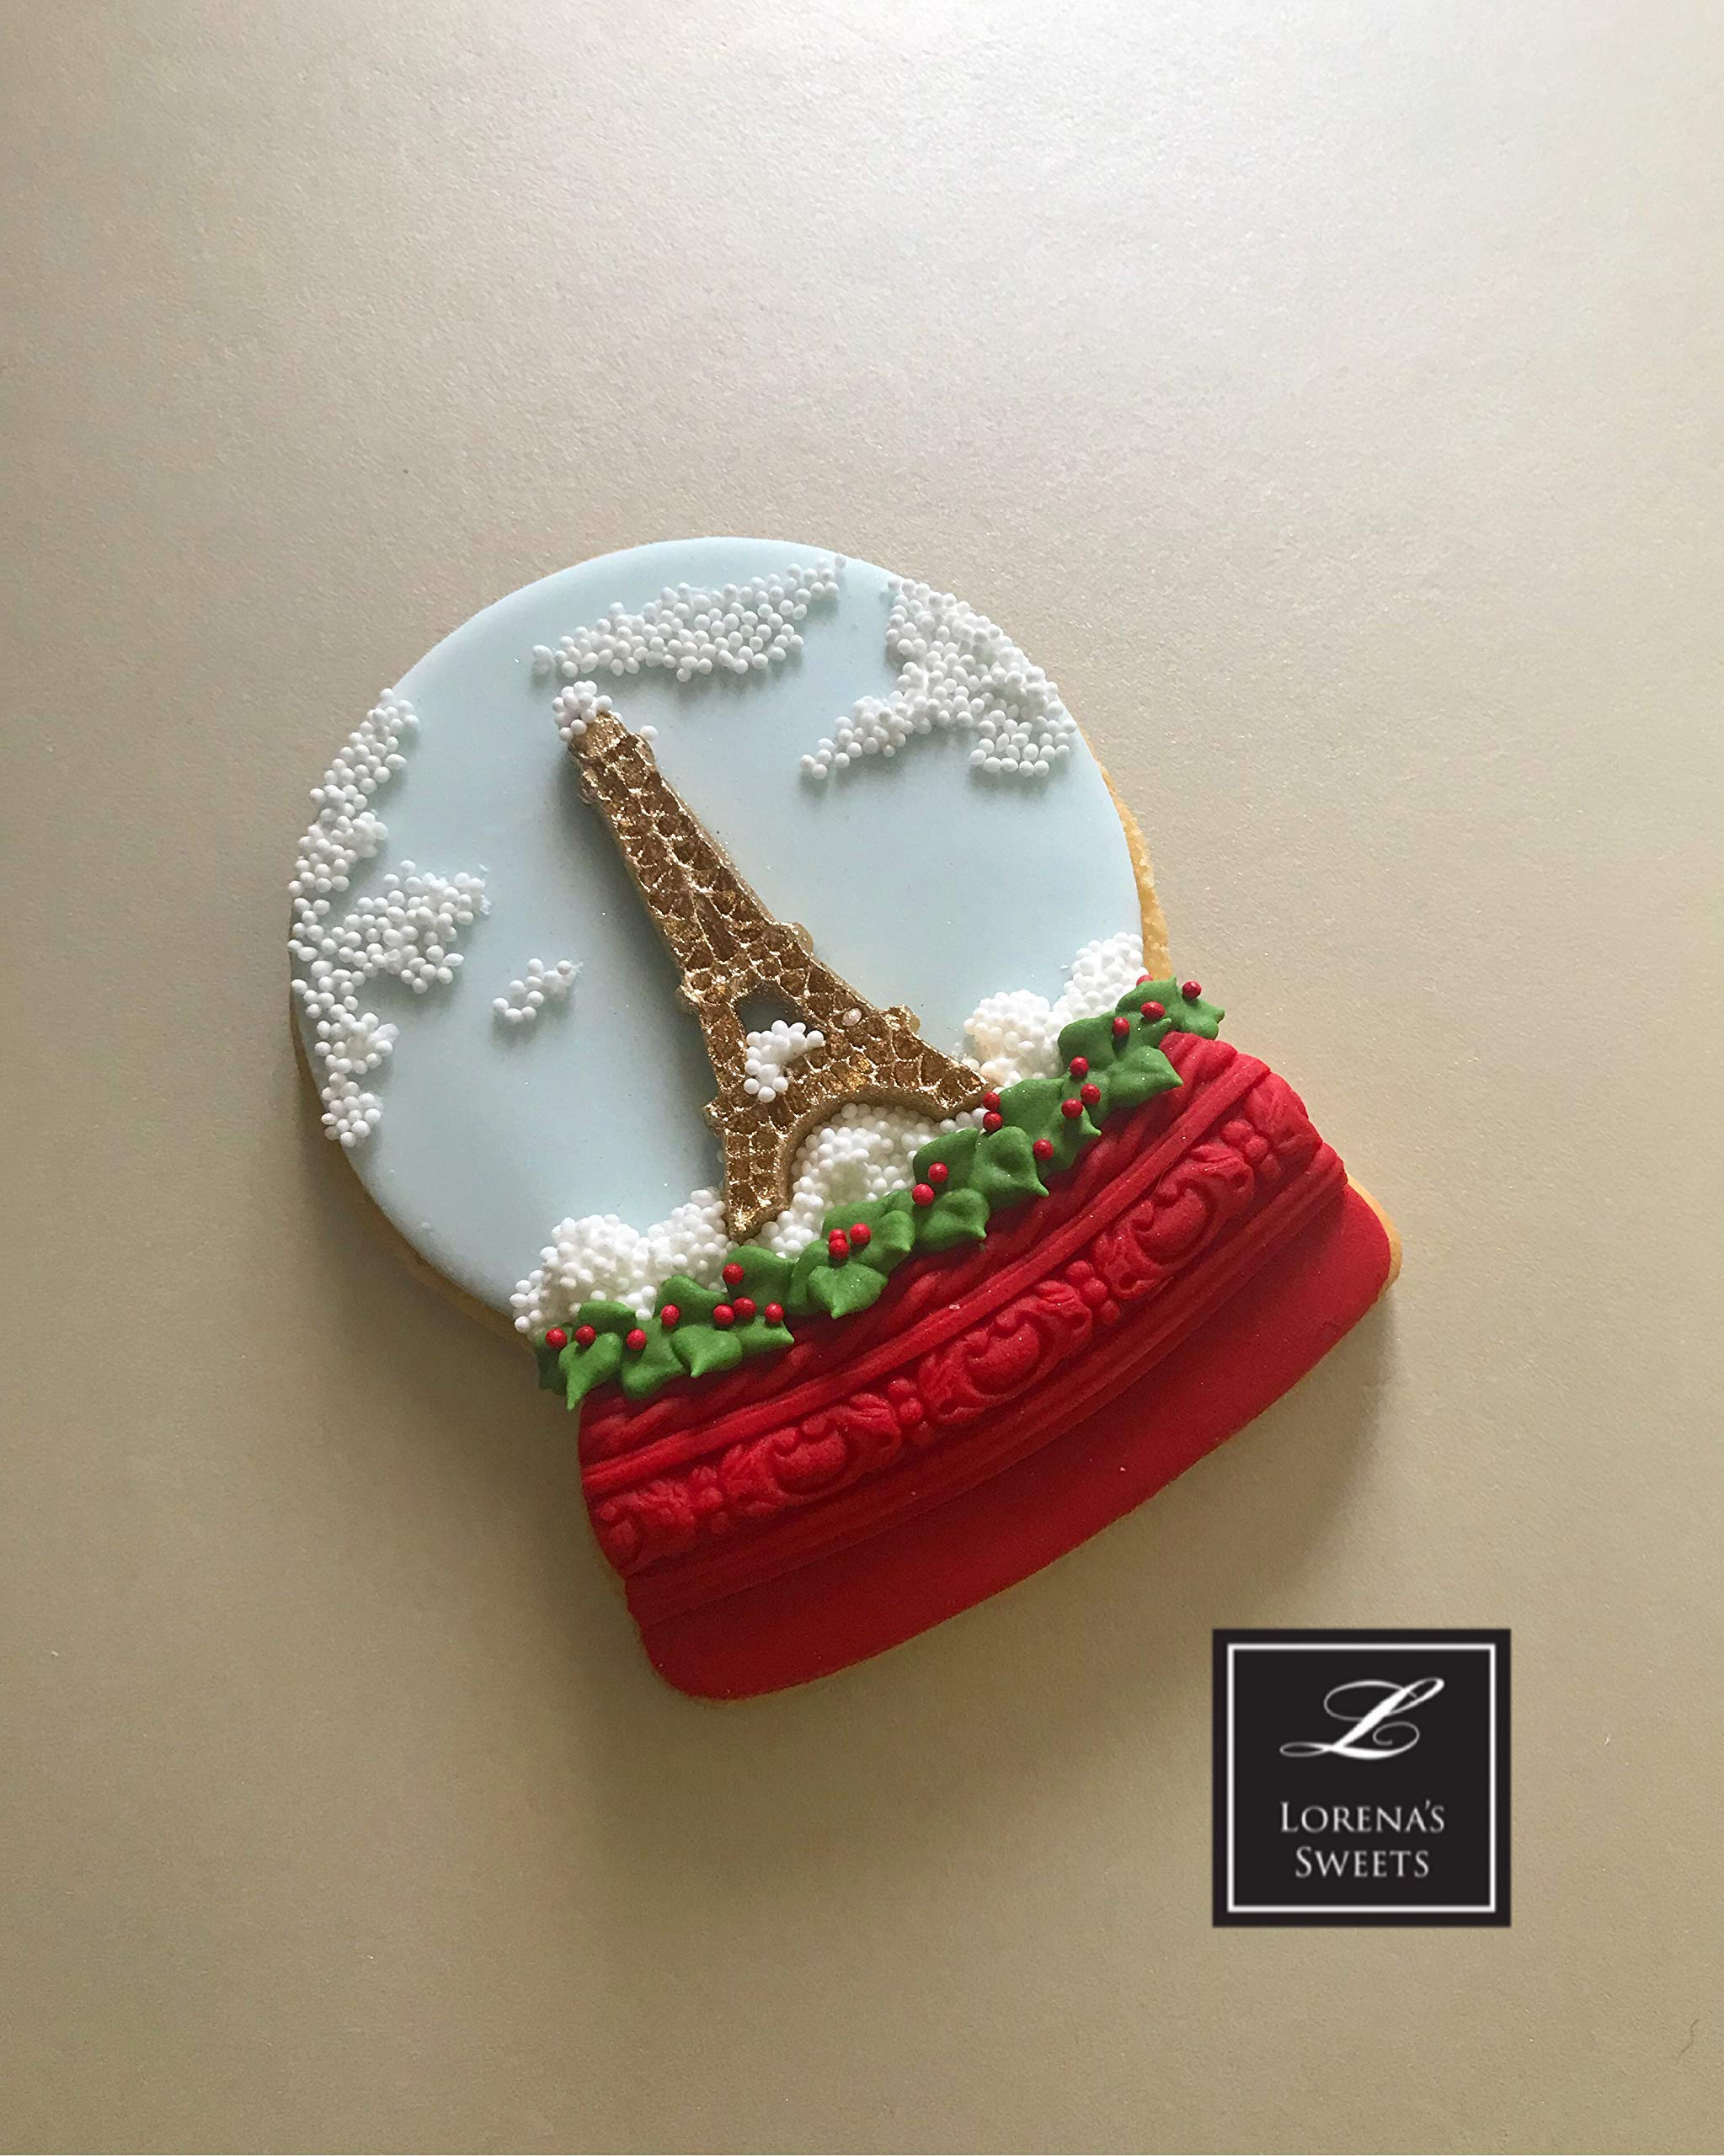 Lorena's Sweets Fondant cookie cutter kit Snow Globe by Lorena´s Sweets (Image #3)